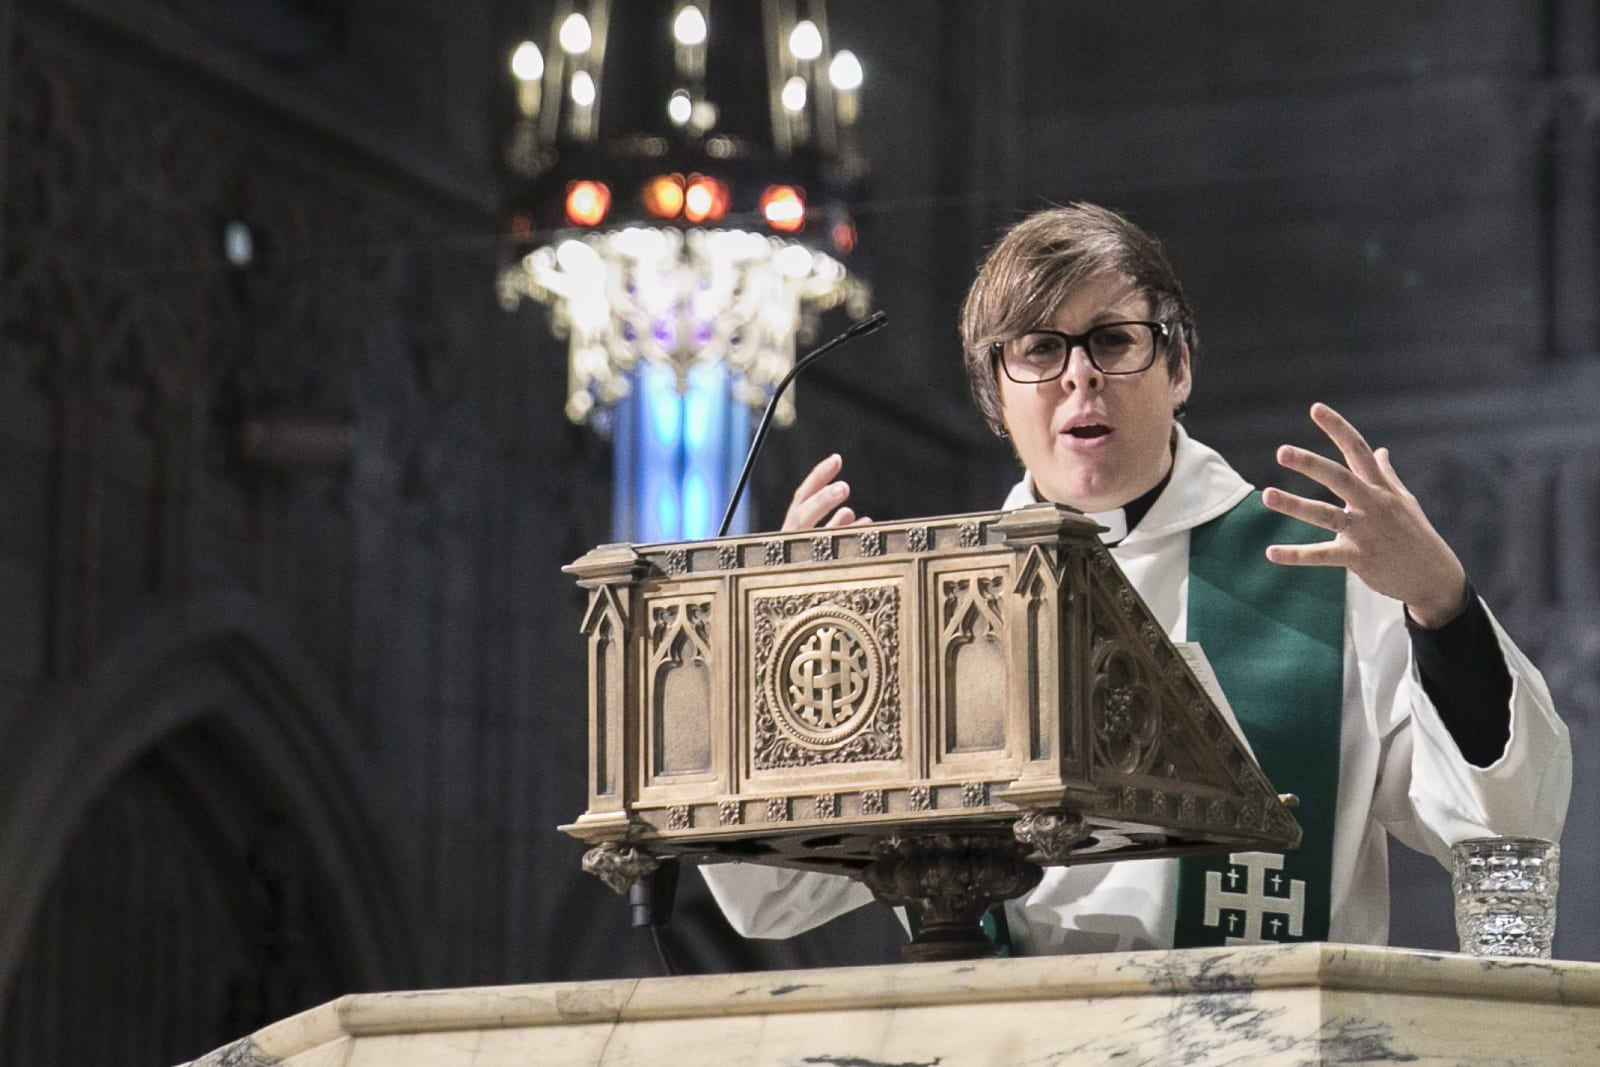 The Rev. Adrienne Koch preaching